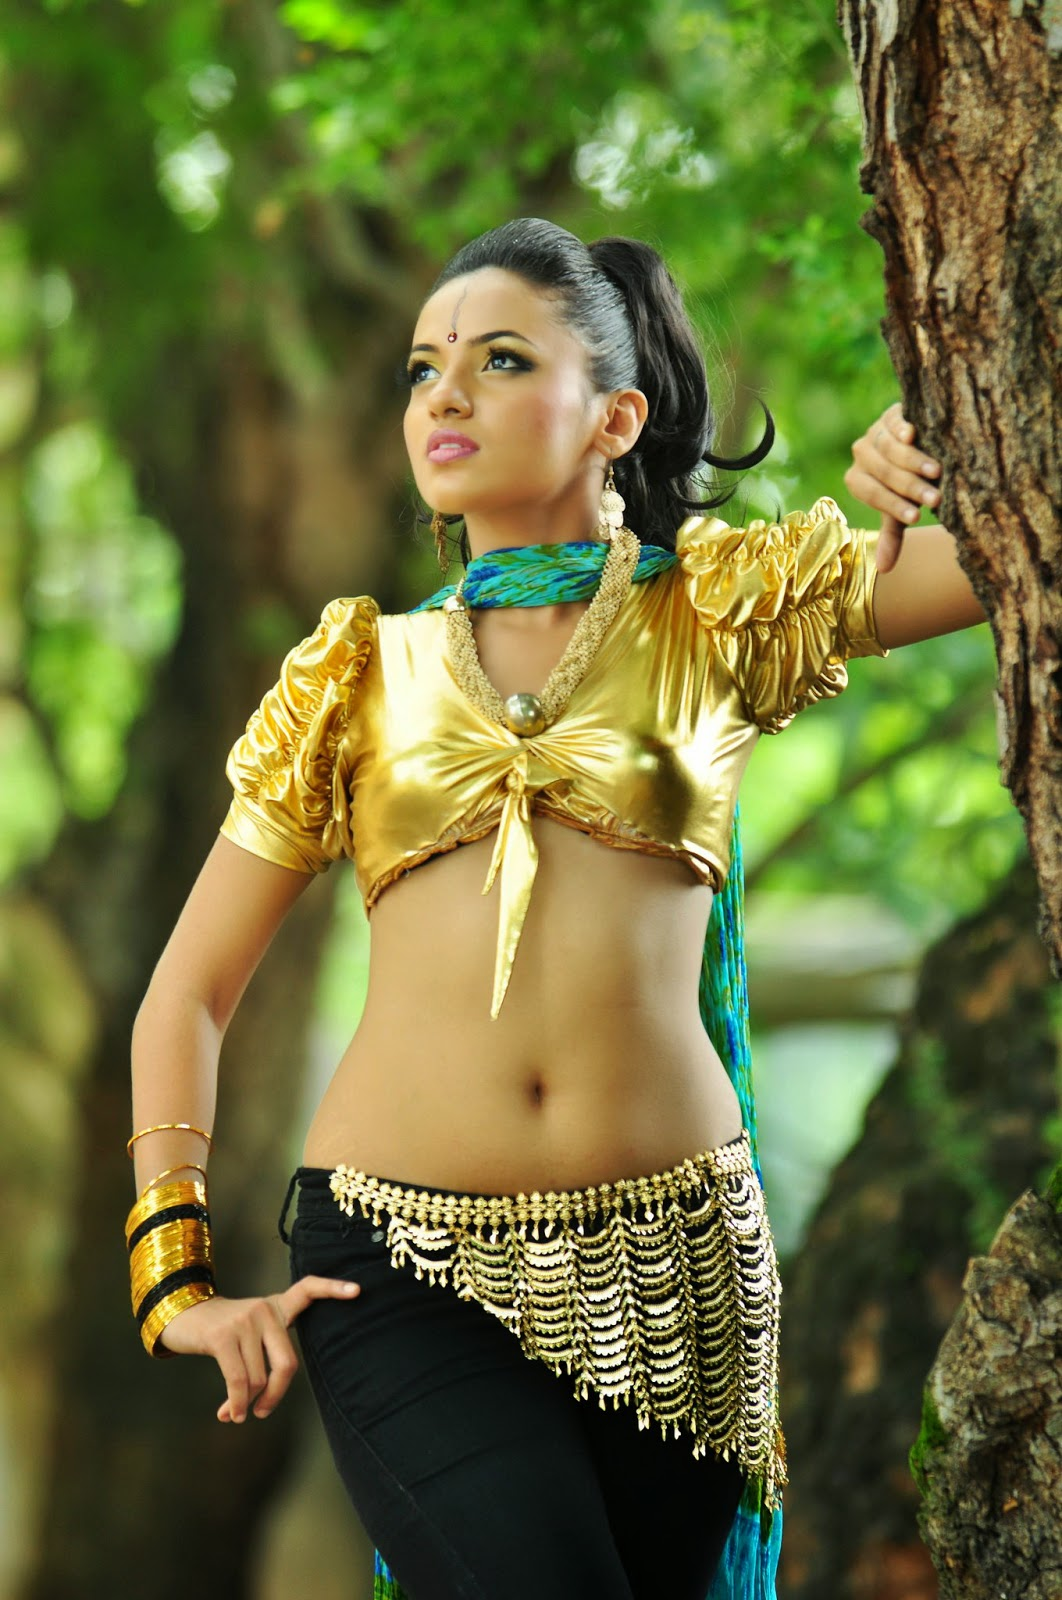 Lankan Hot Actress Model Tv Presenter Singer Pics Photos -8046